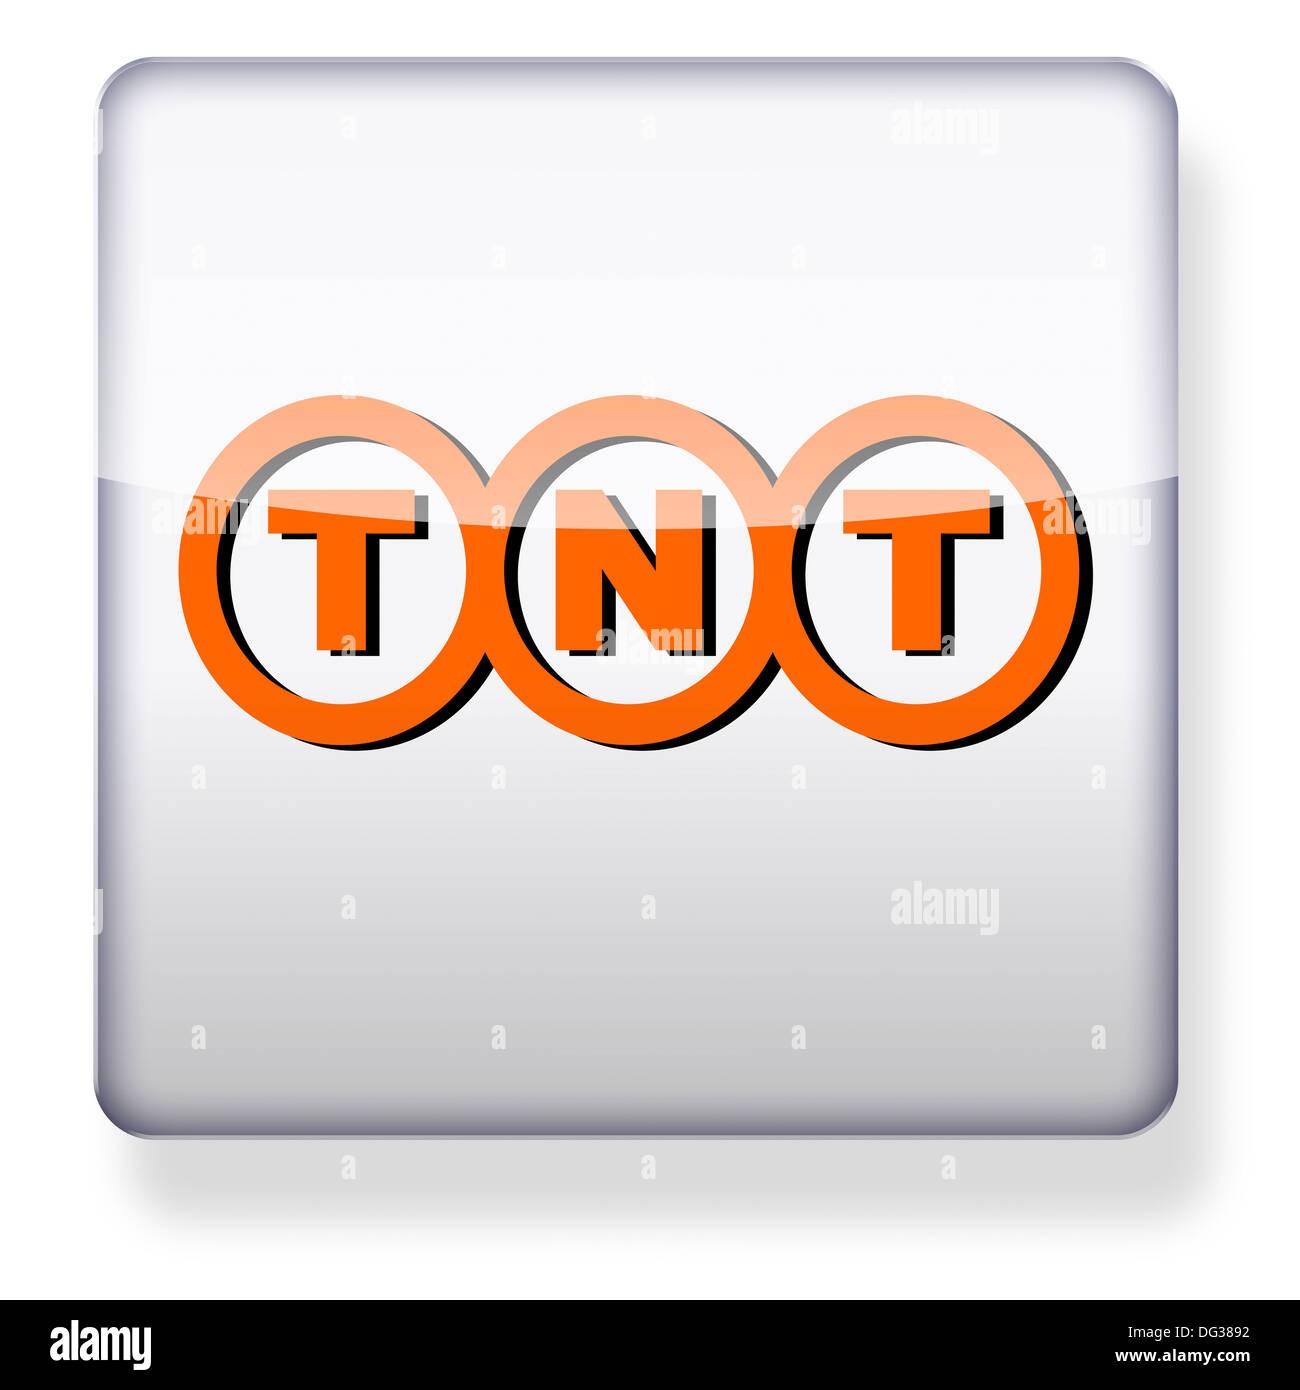 TNT Express logo as an app icon. Clipping path included. - Stock Image